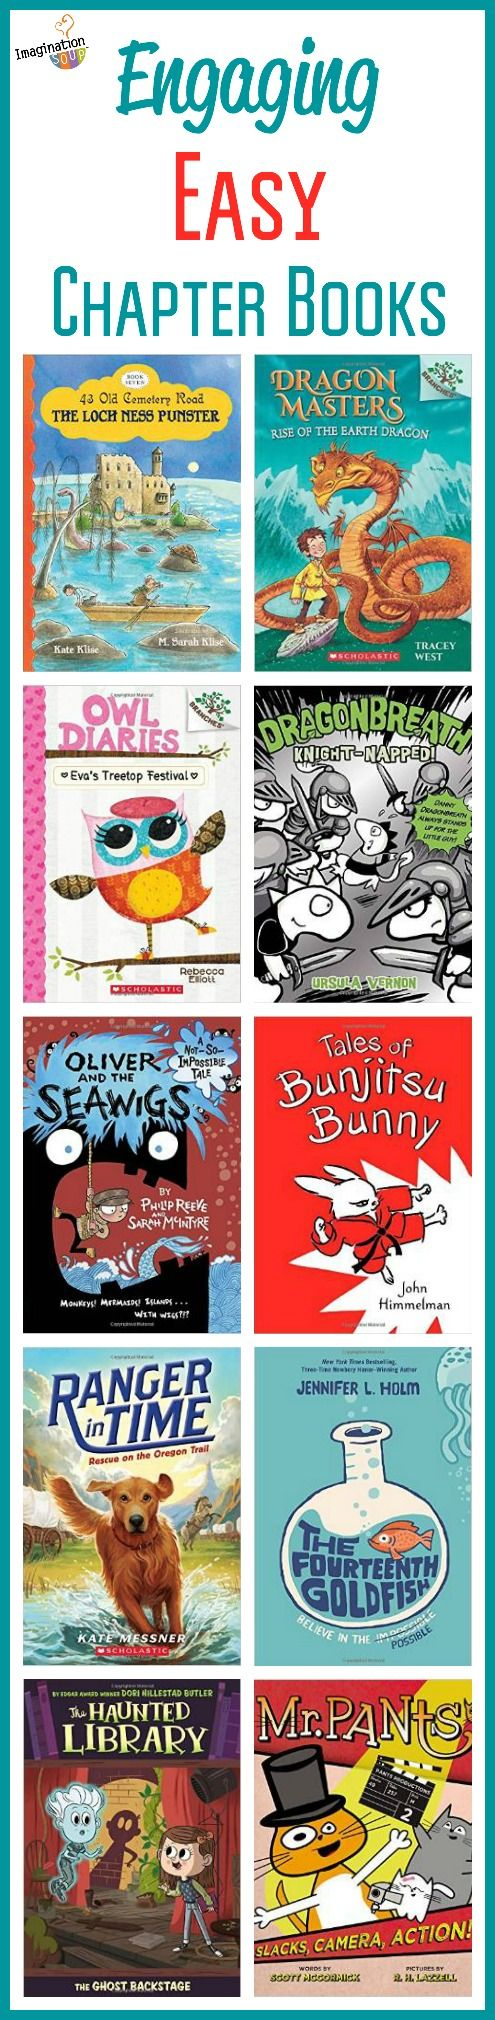 Introducing ten new beginning chapter books for your beginning readers with fun, adventure, hilarity, and curiosity . . . perfect for your kids needing a good book to read and adore.: